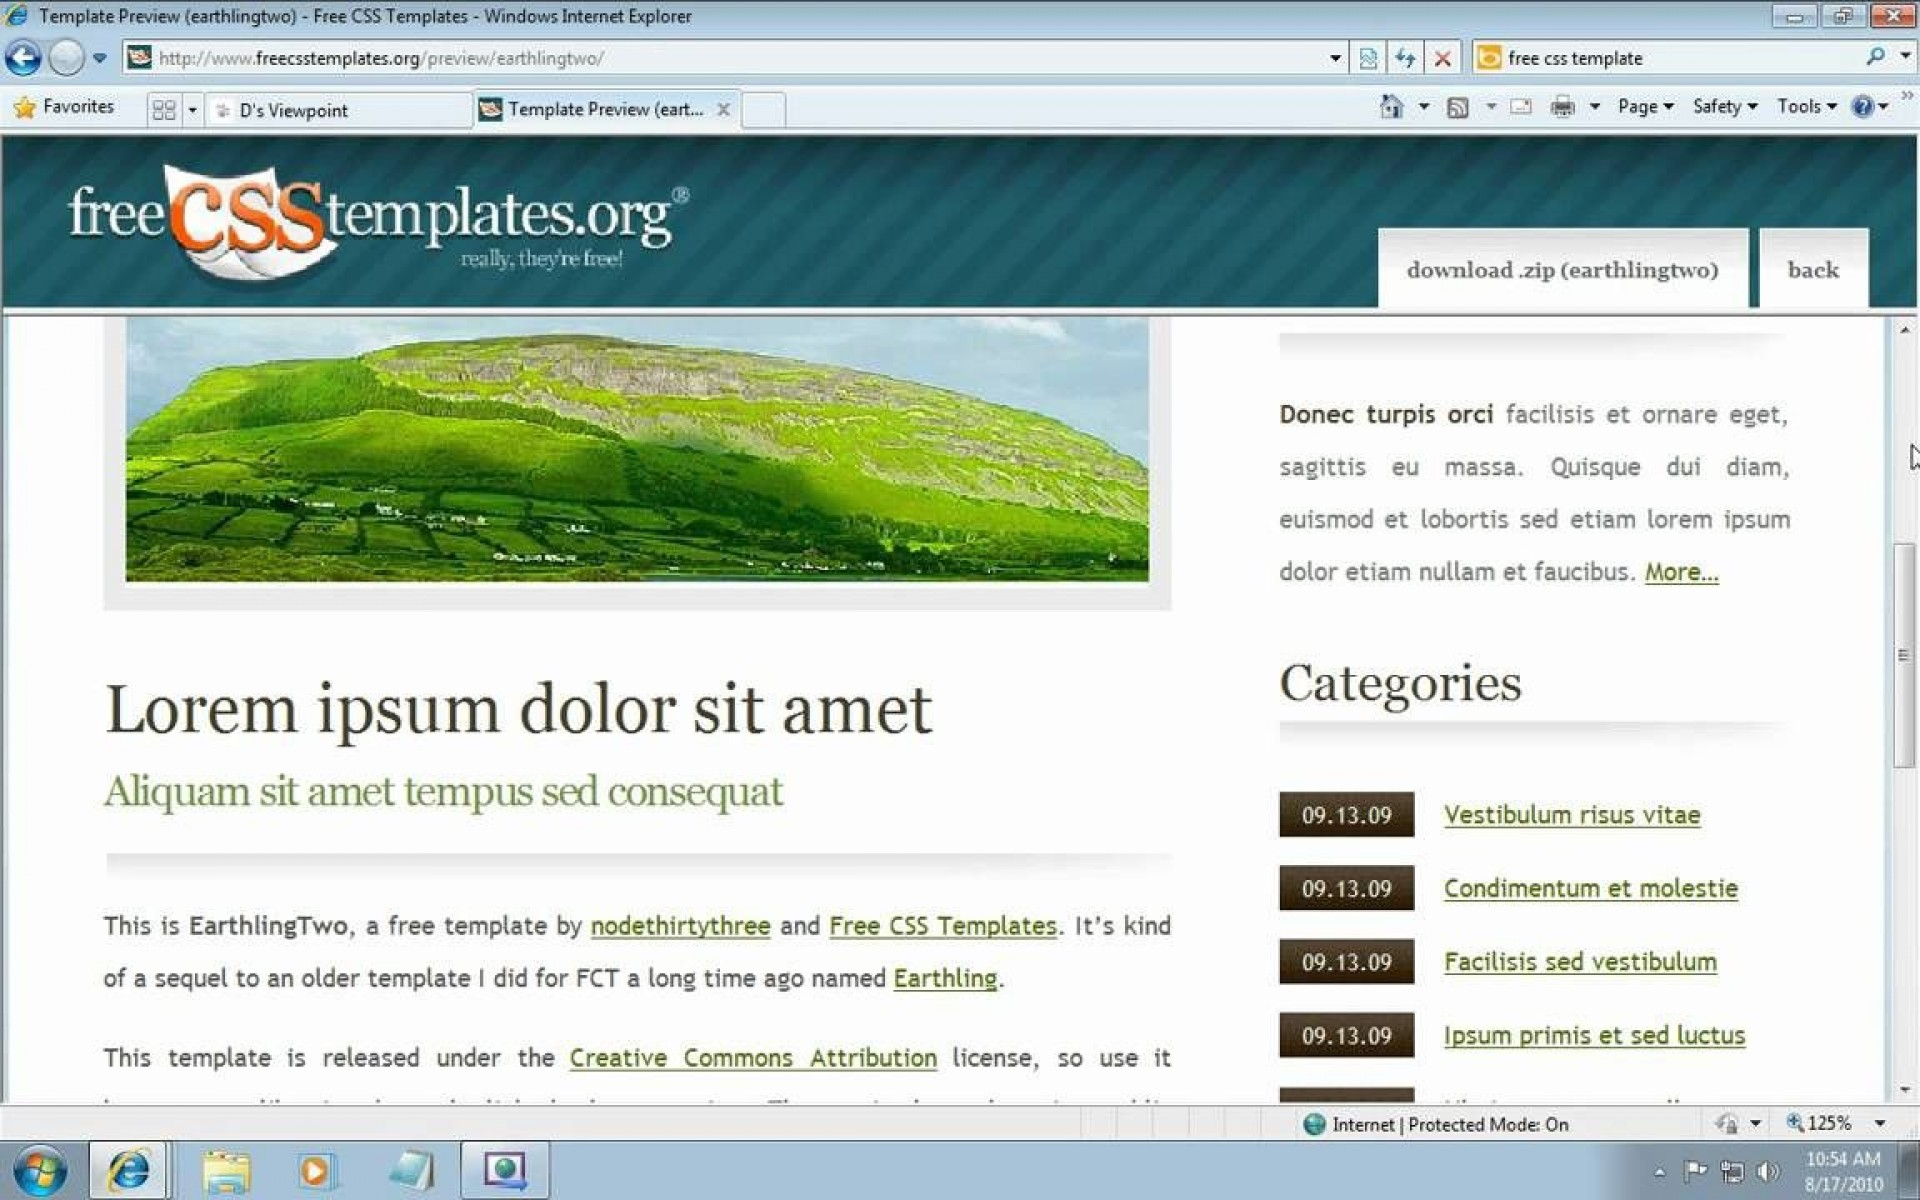 002 Fearsome Web Page Design Template In Asp Net Example  Asp.net1920